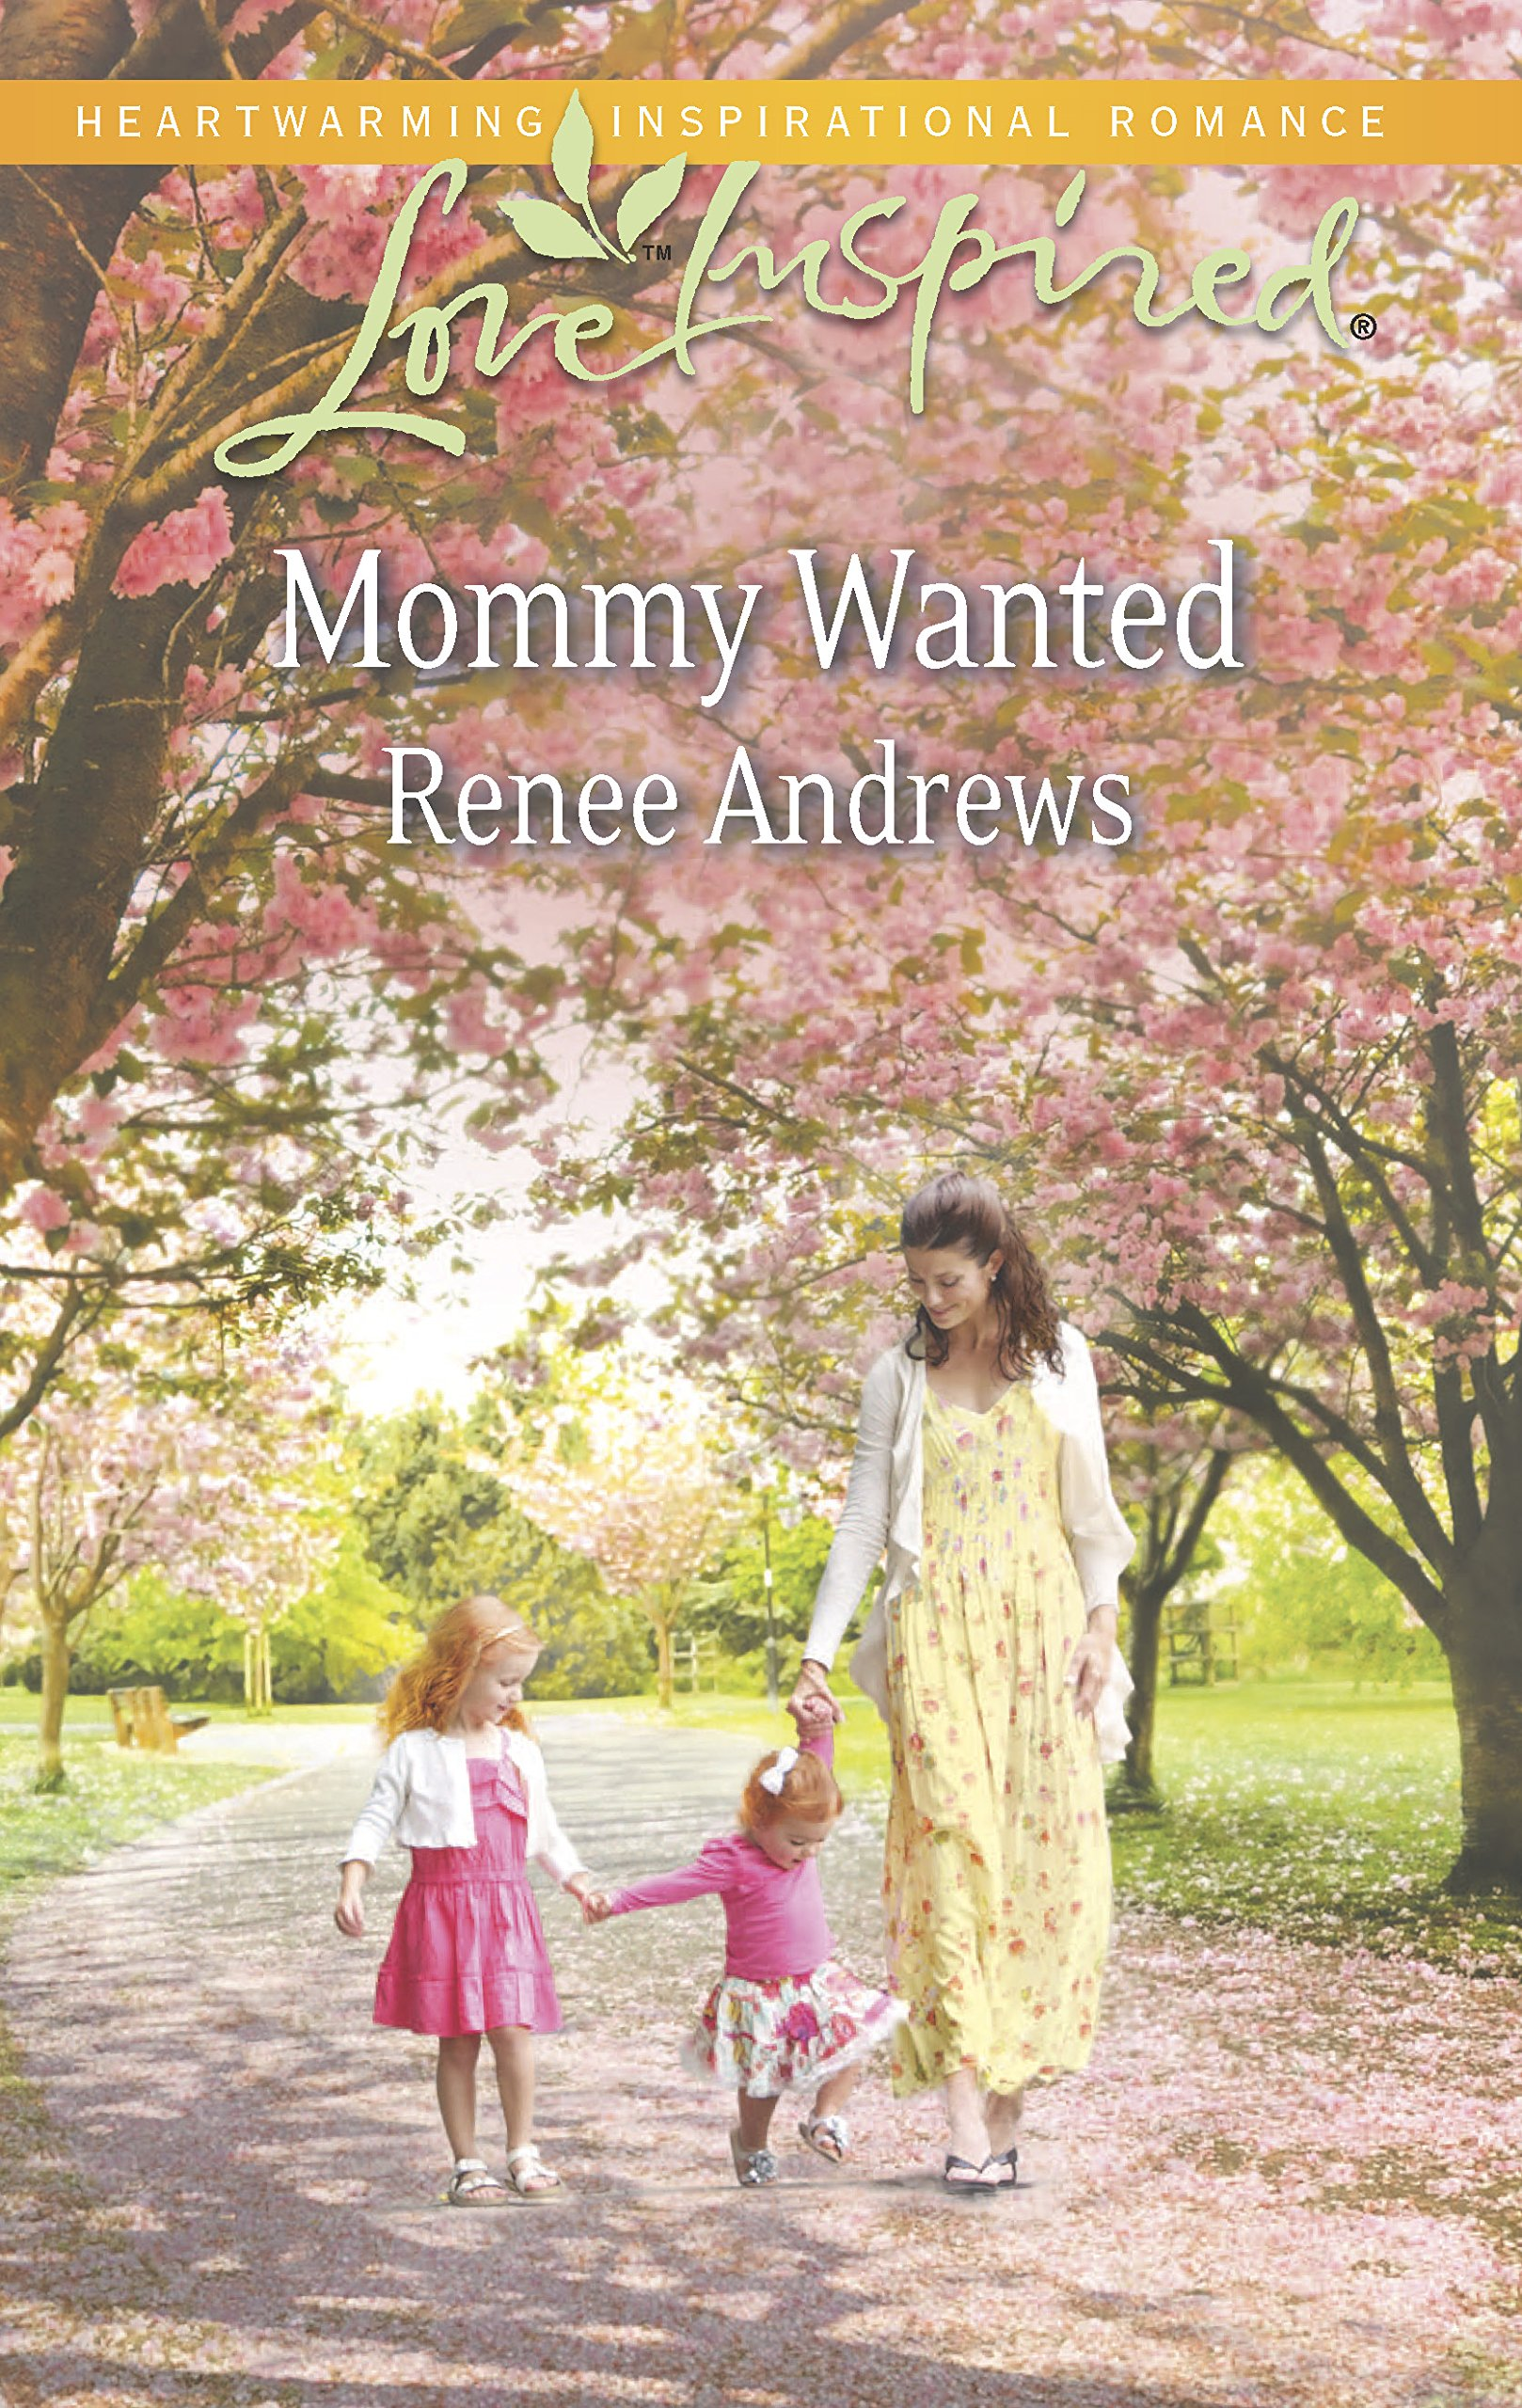 mommy wanted andrews renee